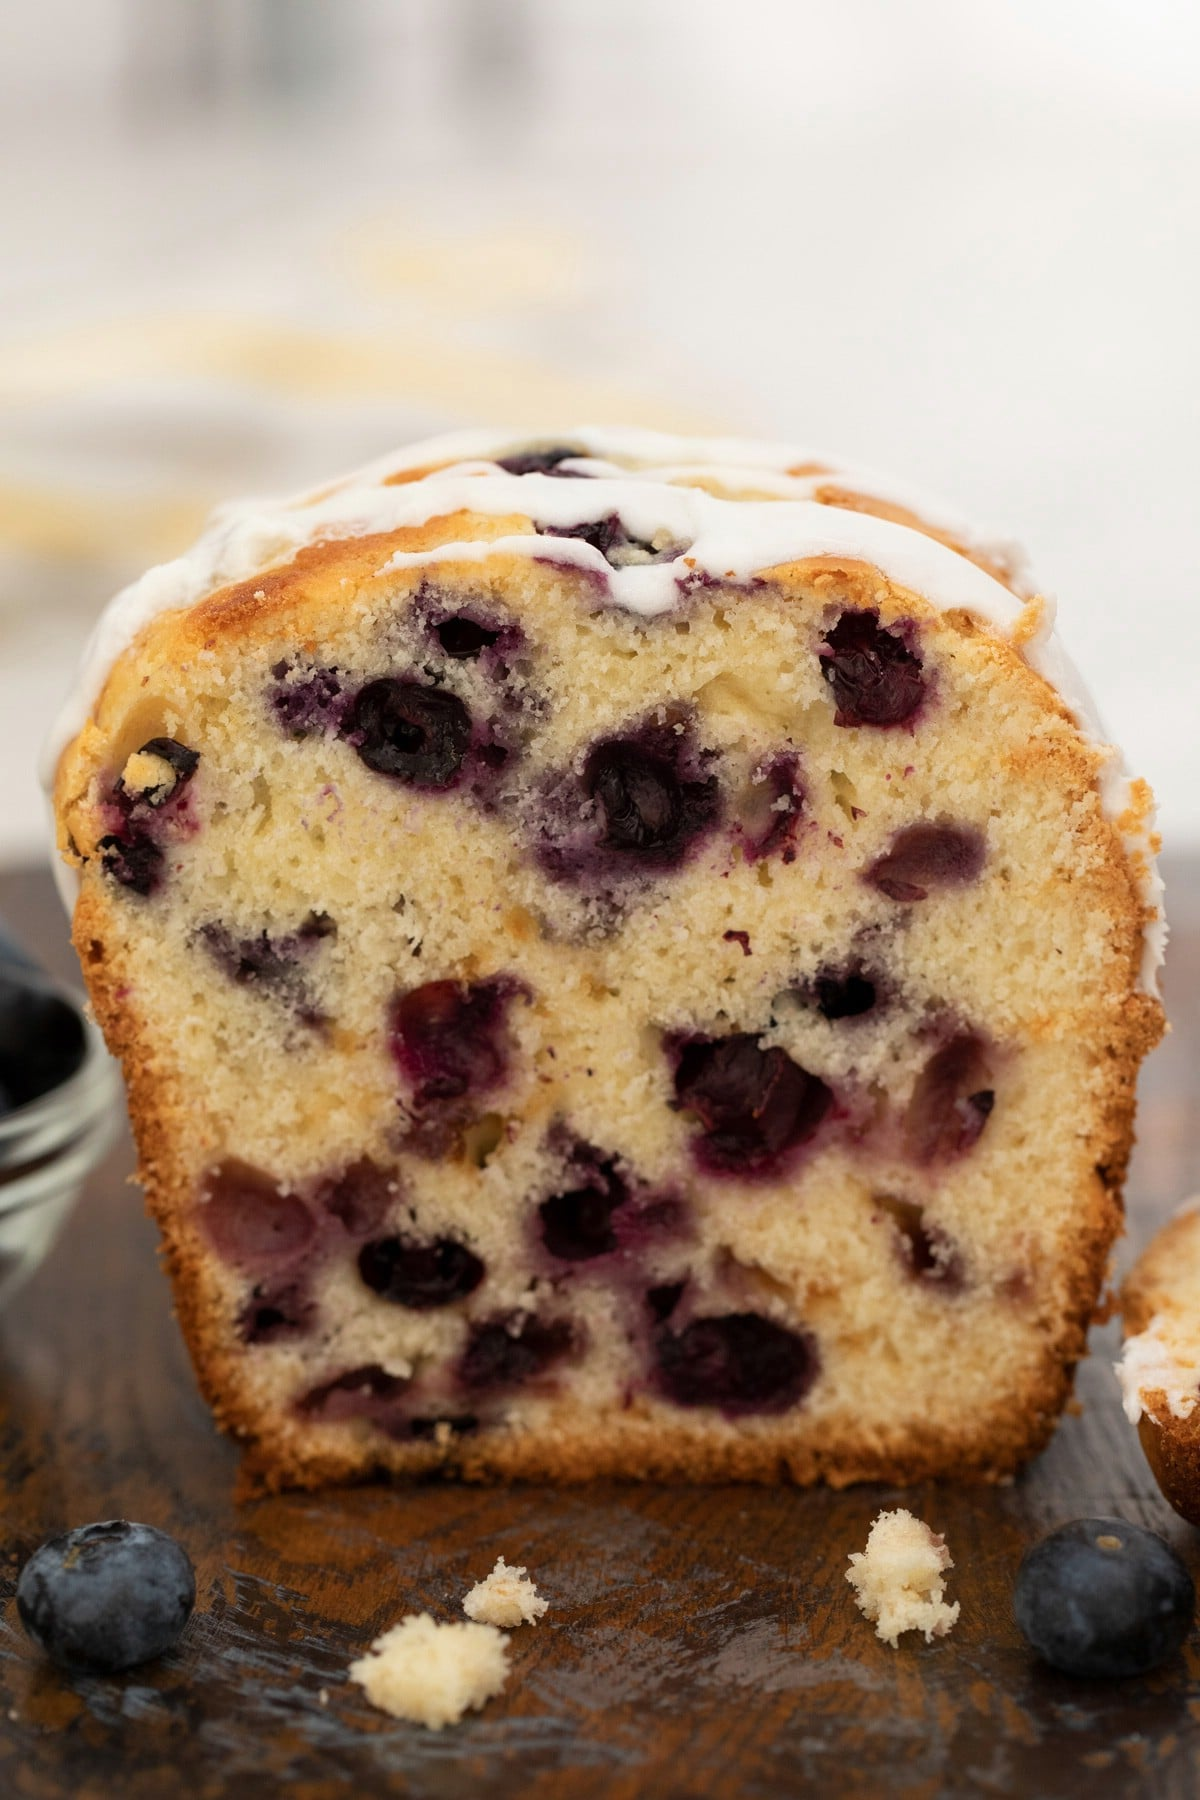 Slice of blueberry bread on cutting board